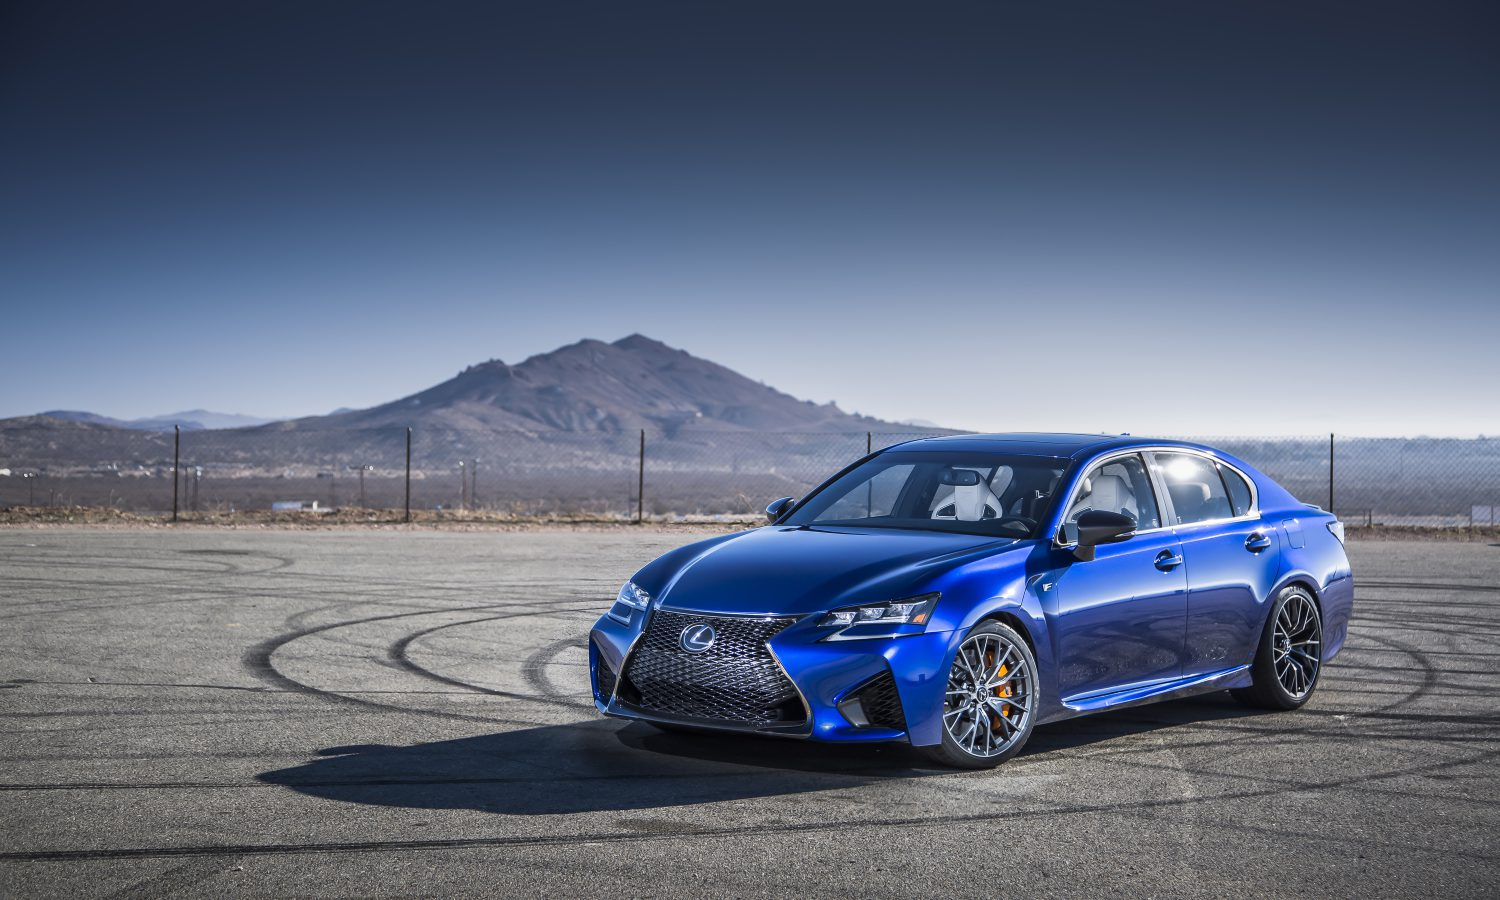 Lexus Announces the Latest Addition to the Daunting 'F' Performance Line: the GS F Sedan